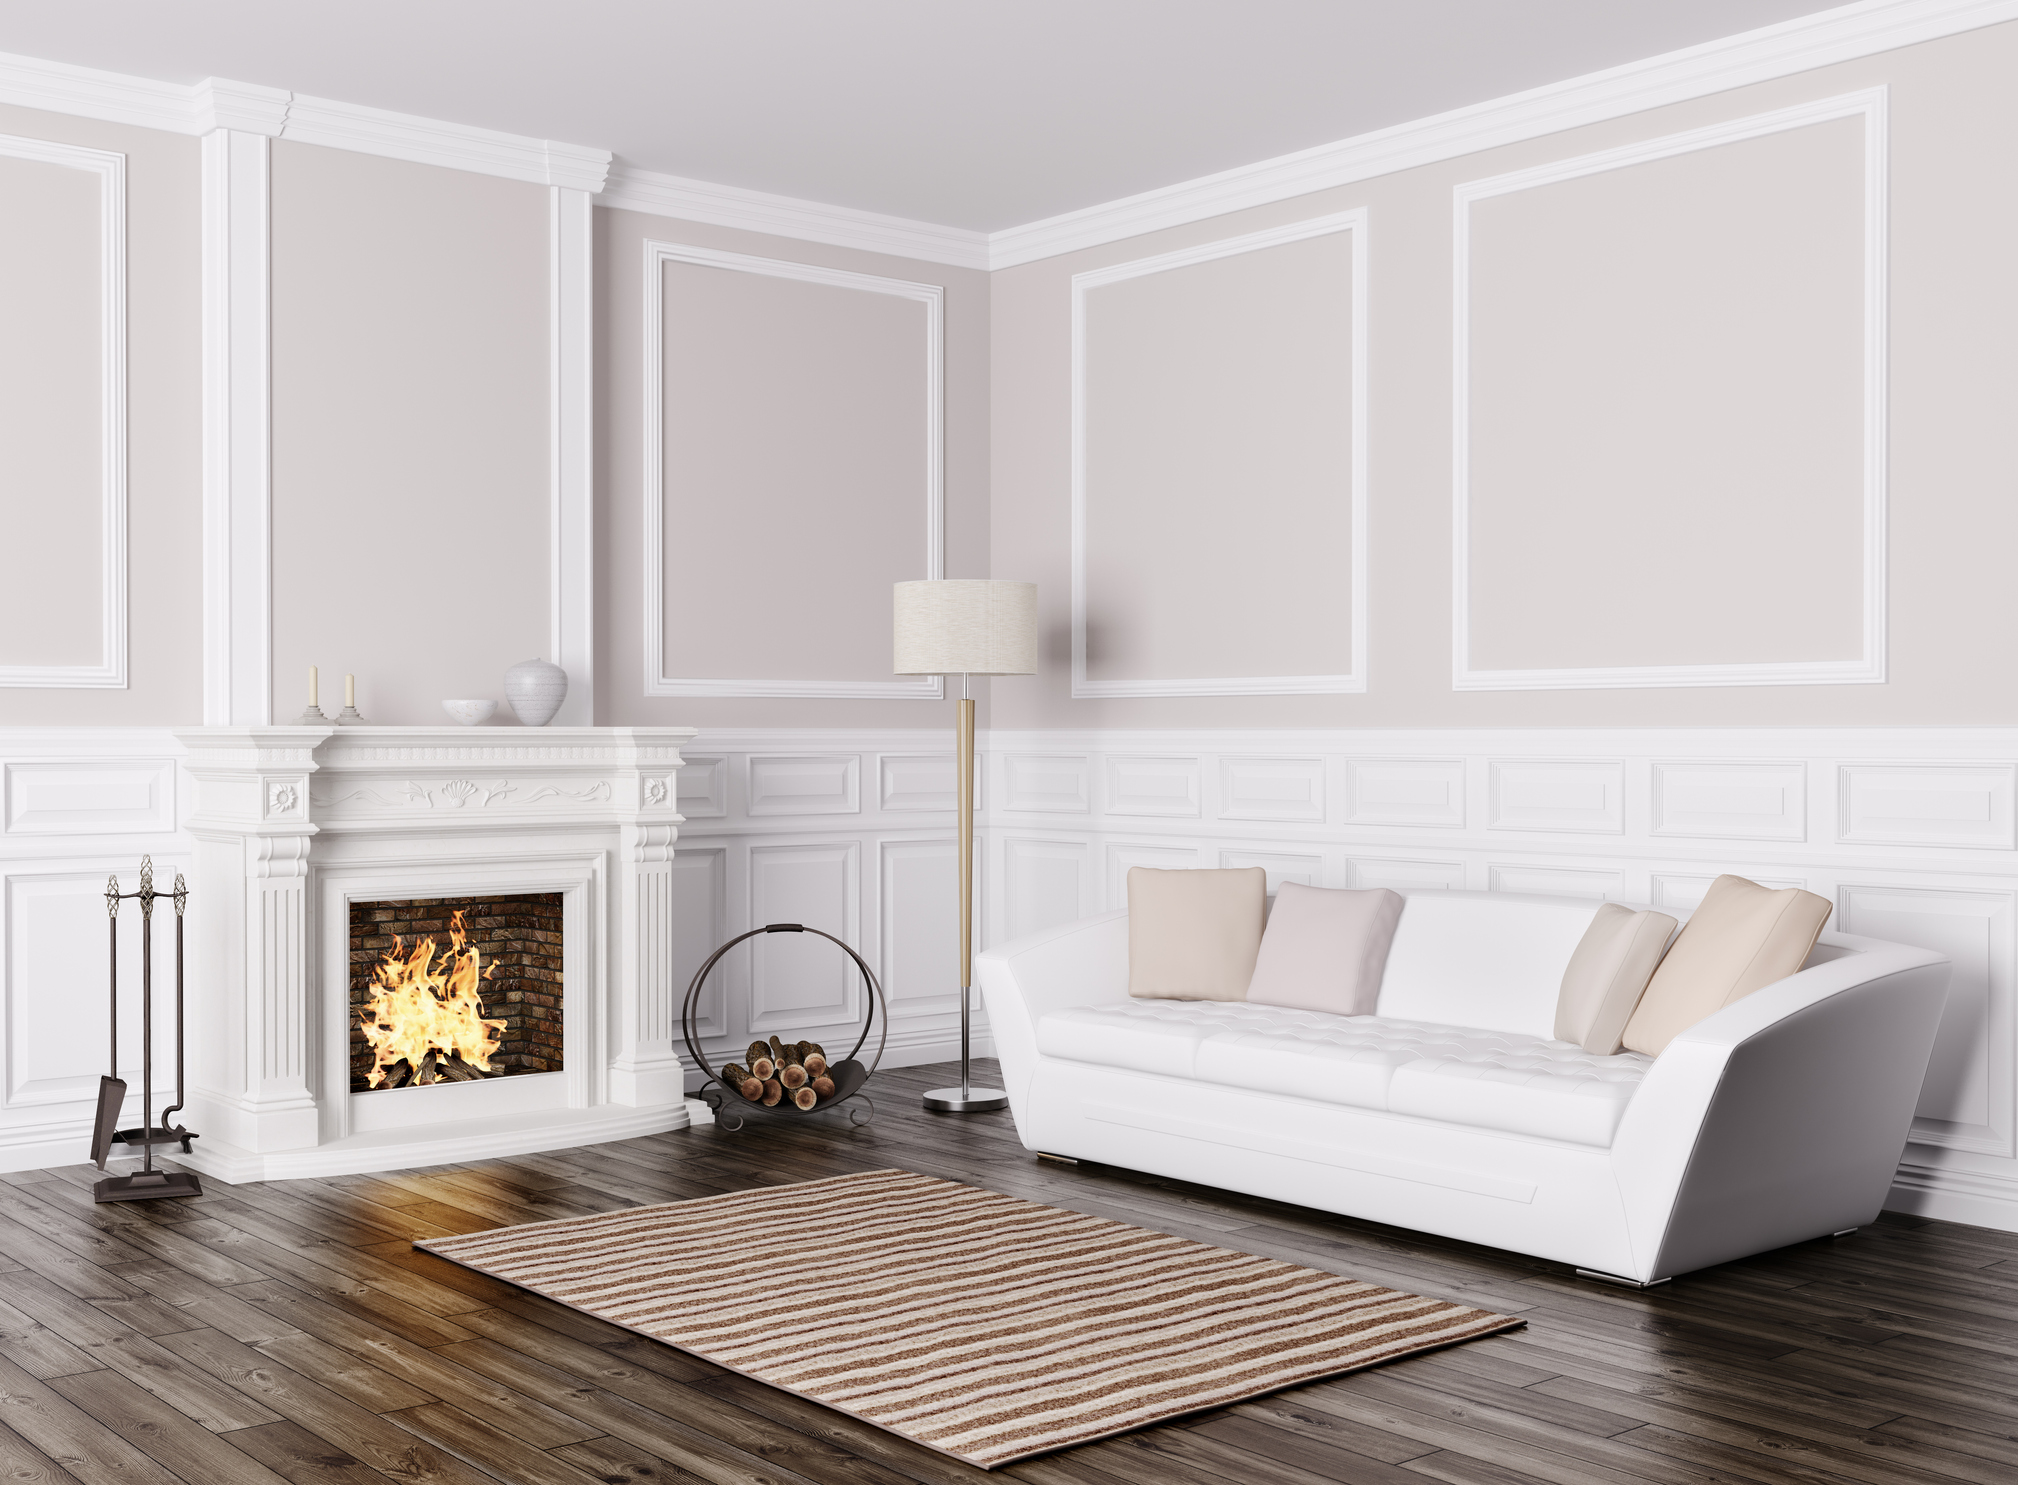 Interior of living room with sofa and fireplace 3d render